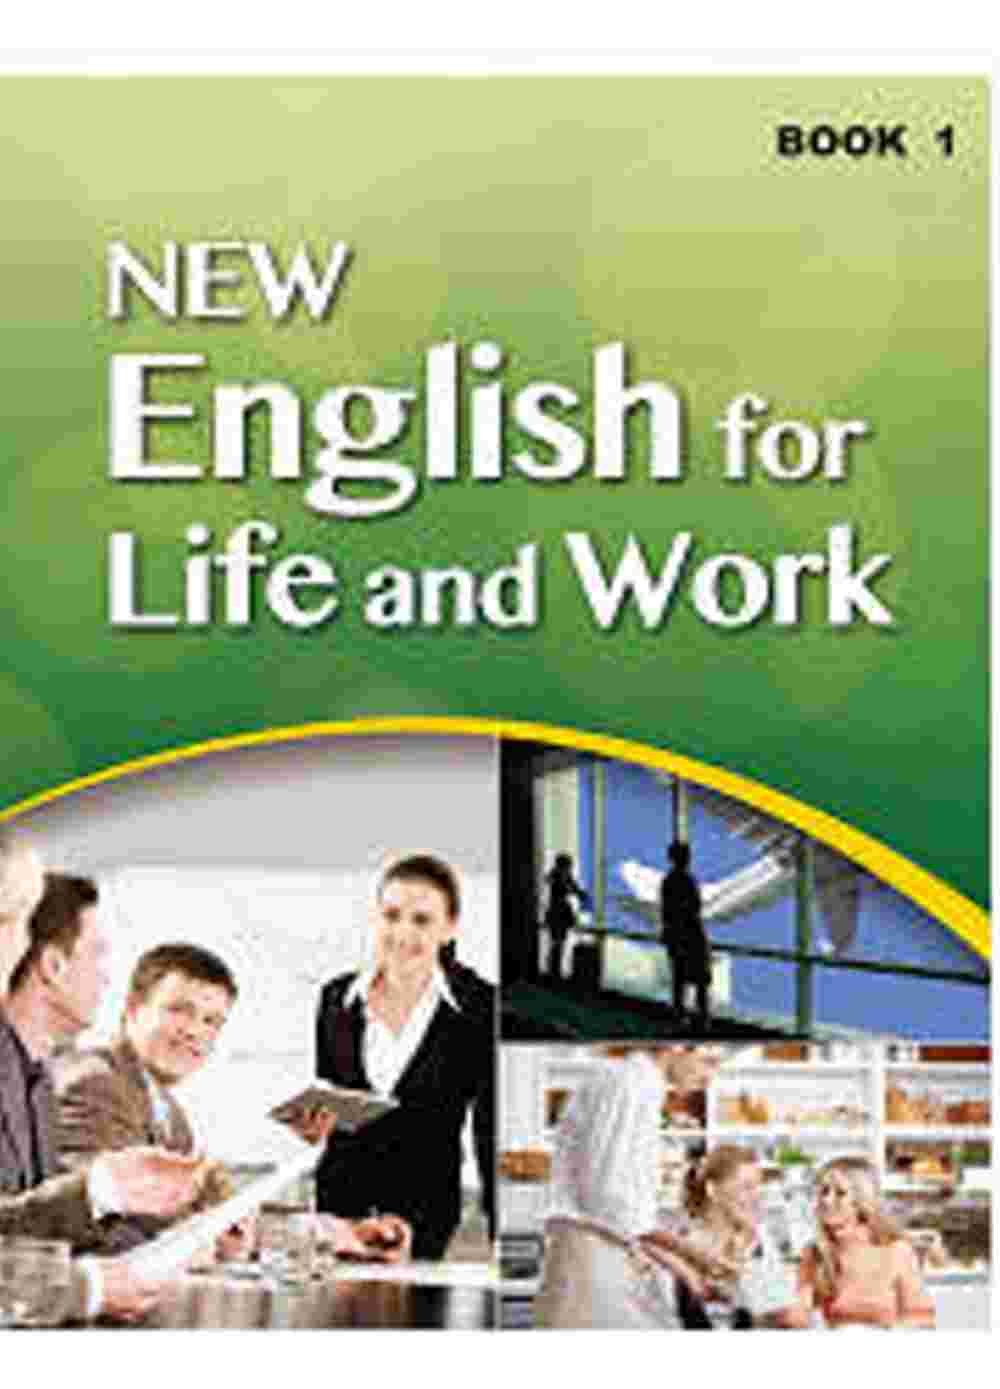 大專用書:NEW English for Life and Work Book 1(1書+1互動光碟)